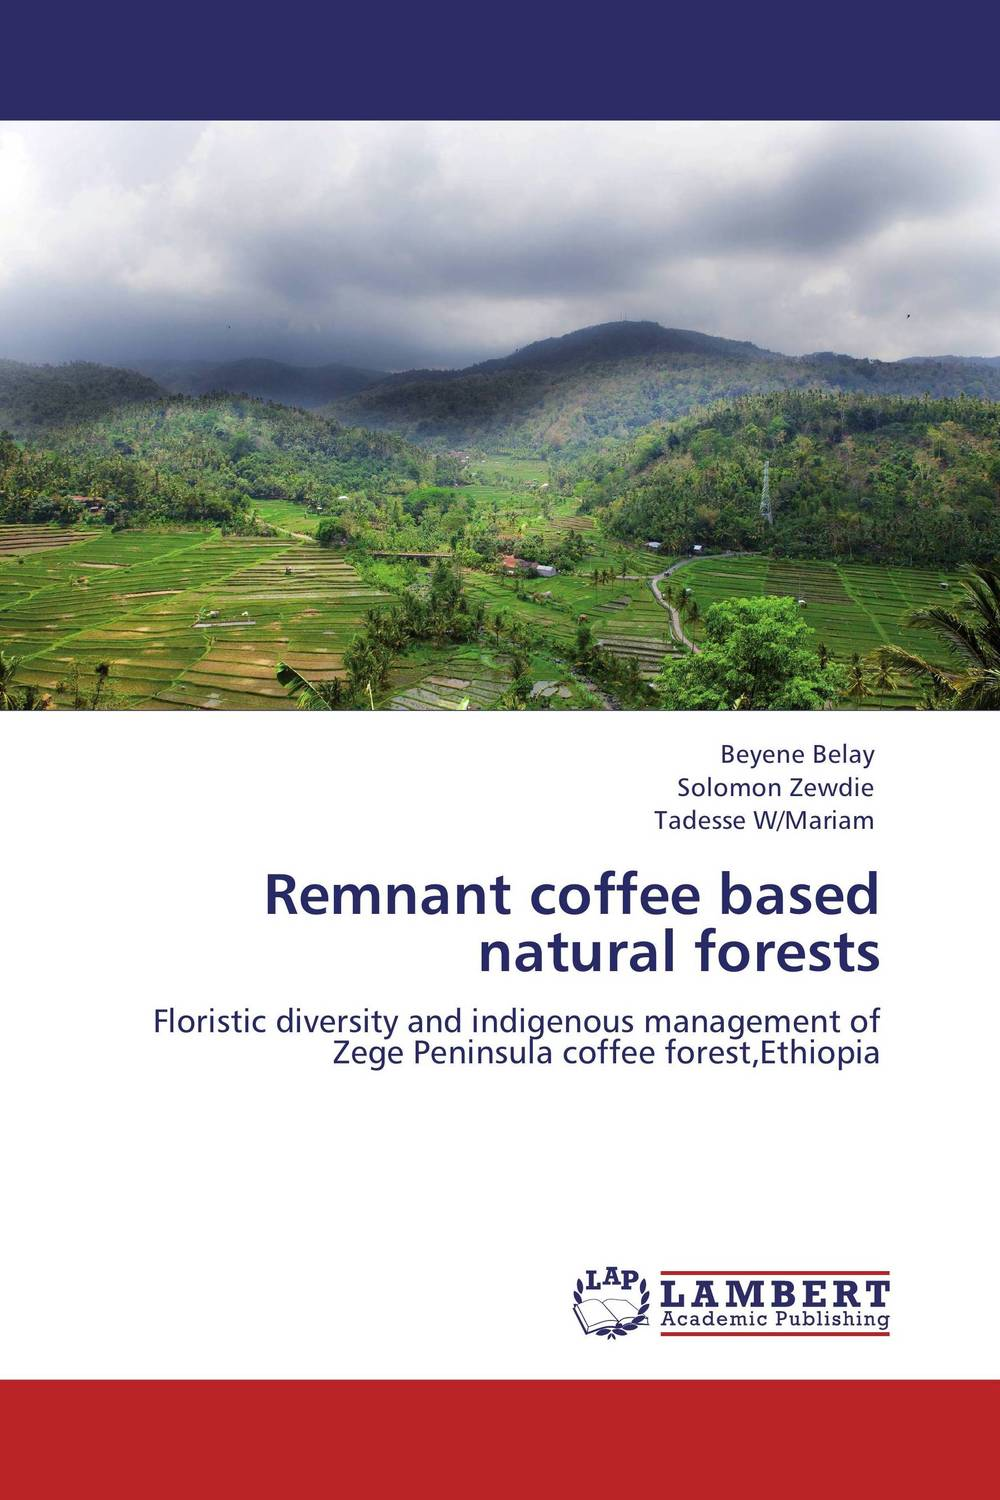 Remnant coffee based natural forests